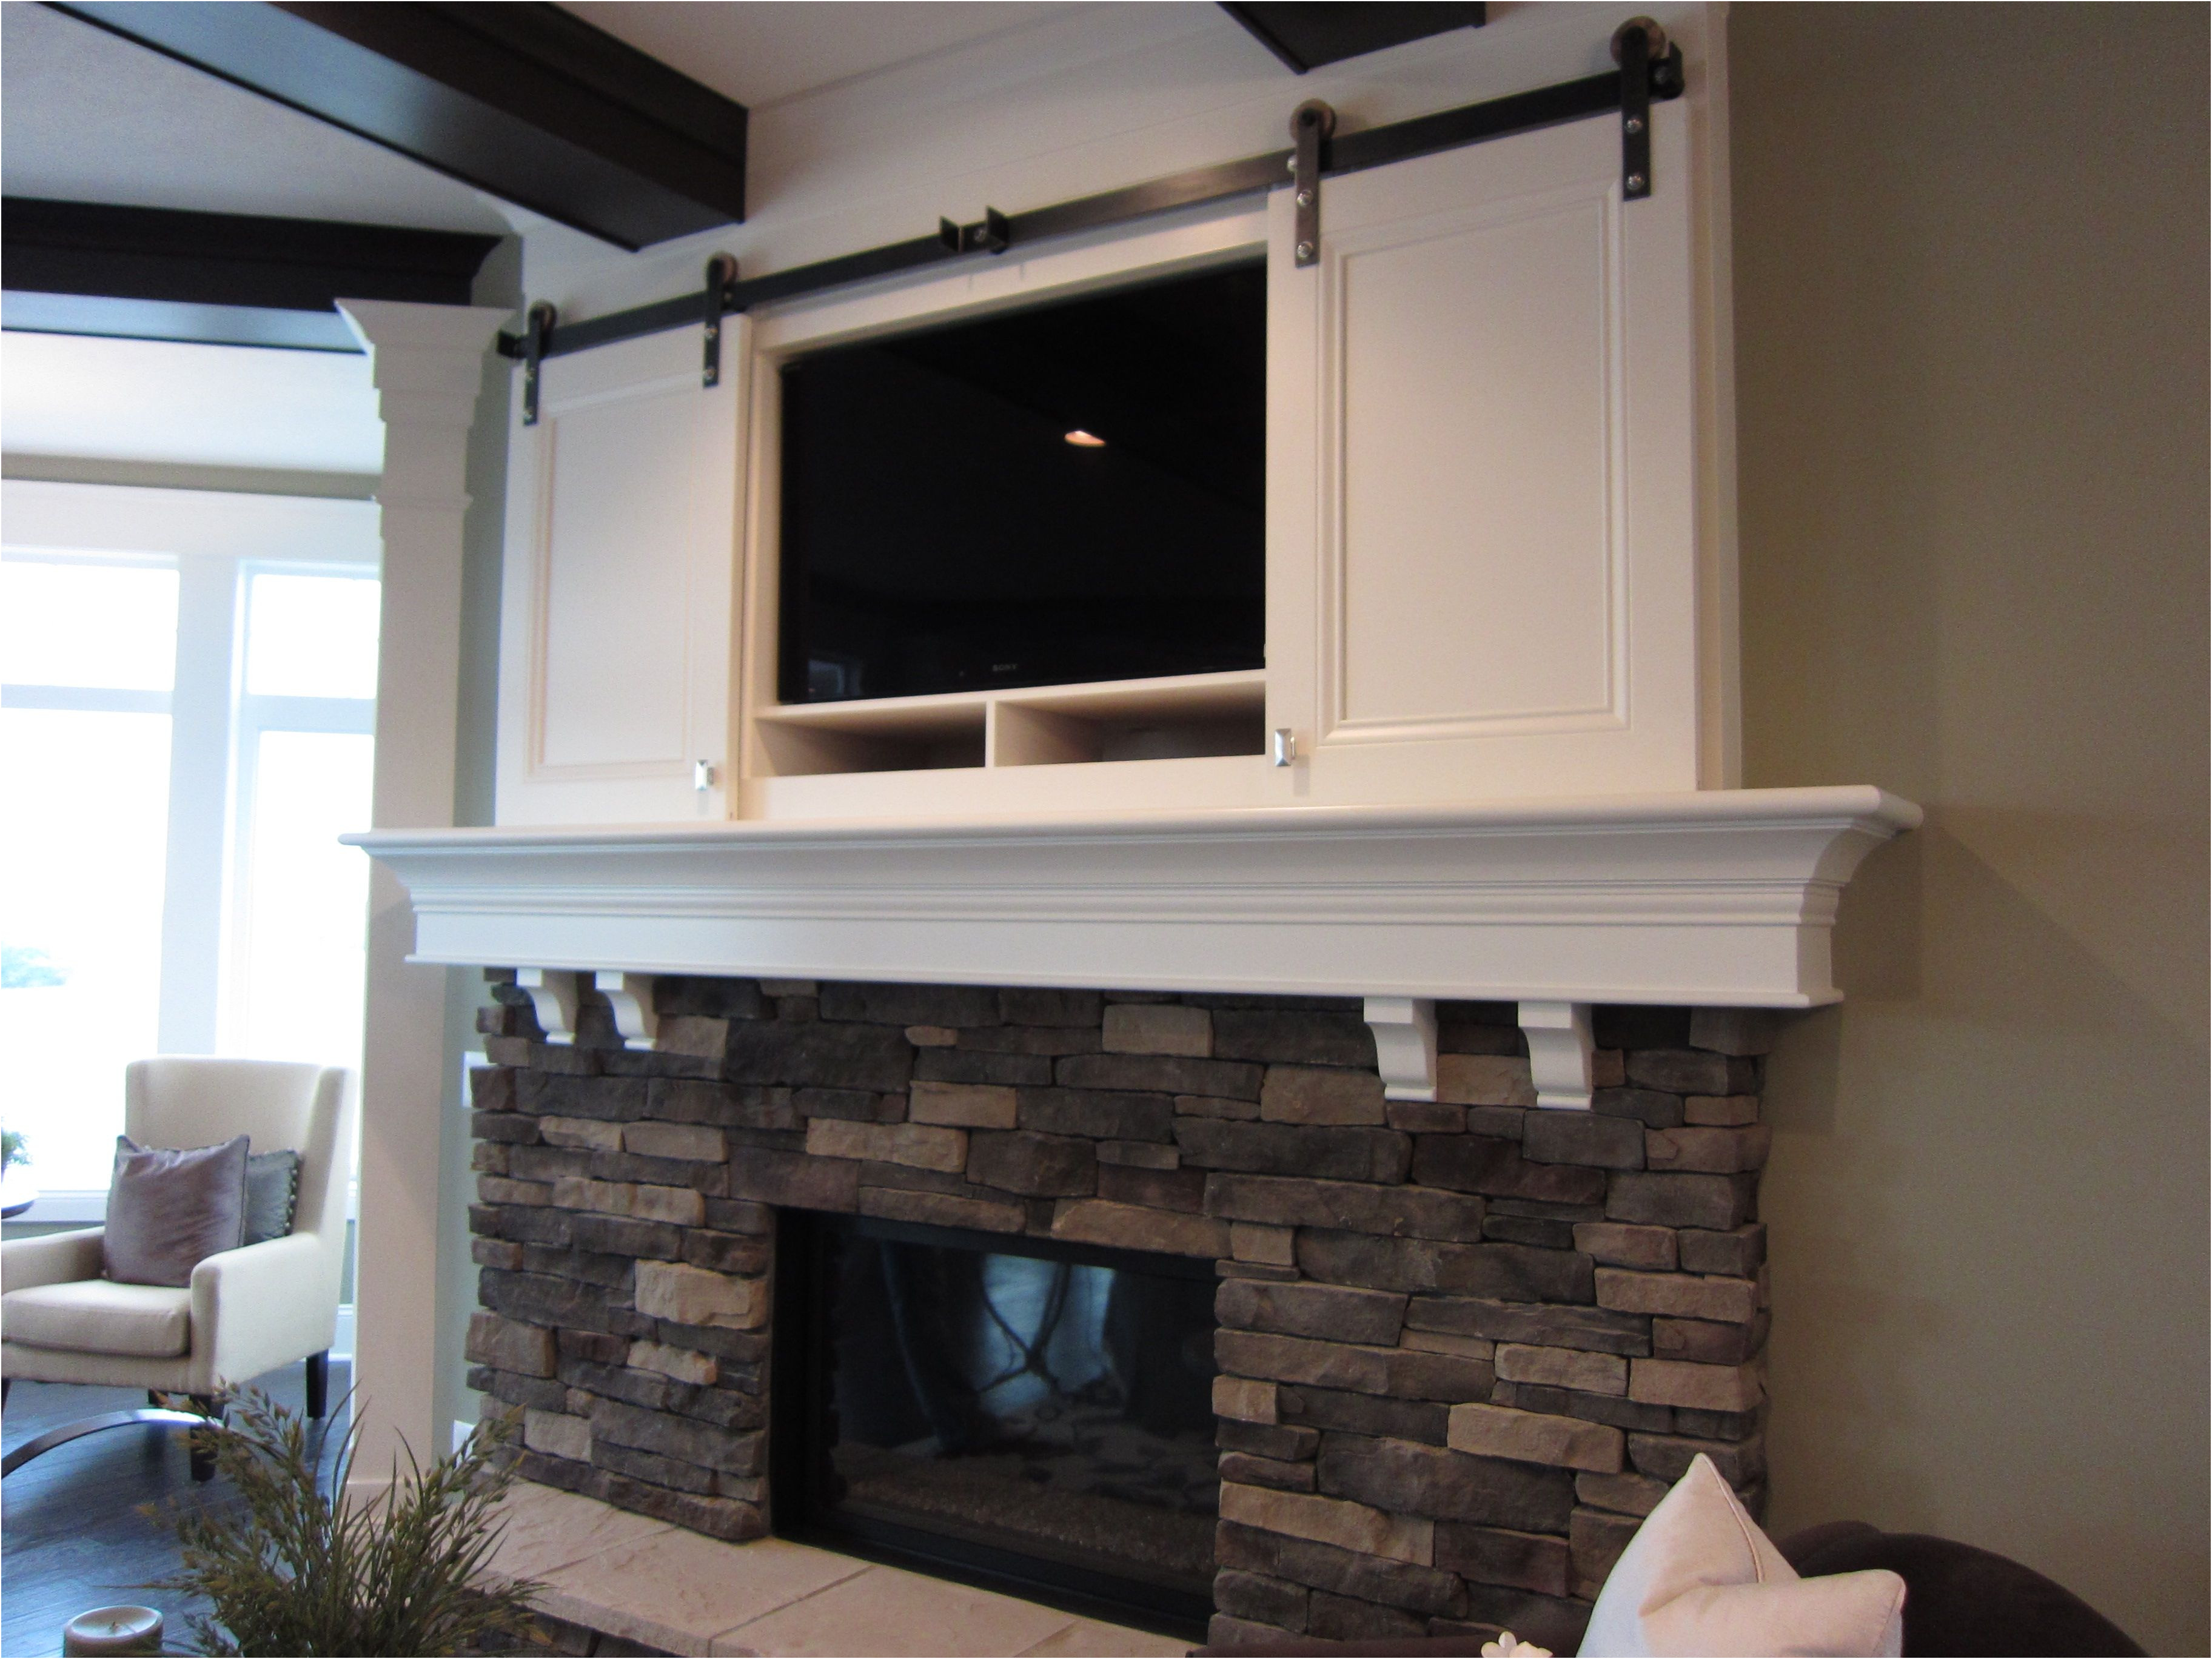 Tv Above Gas Fireplace Ideas Fresh Fireplace Tv Mantel Ideas Best 25 Tv Above Fireplace Ideas